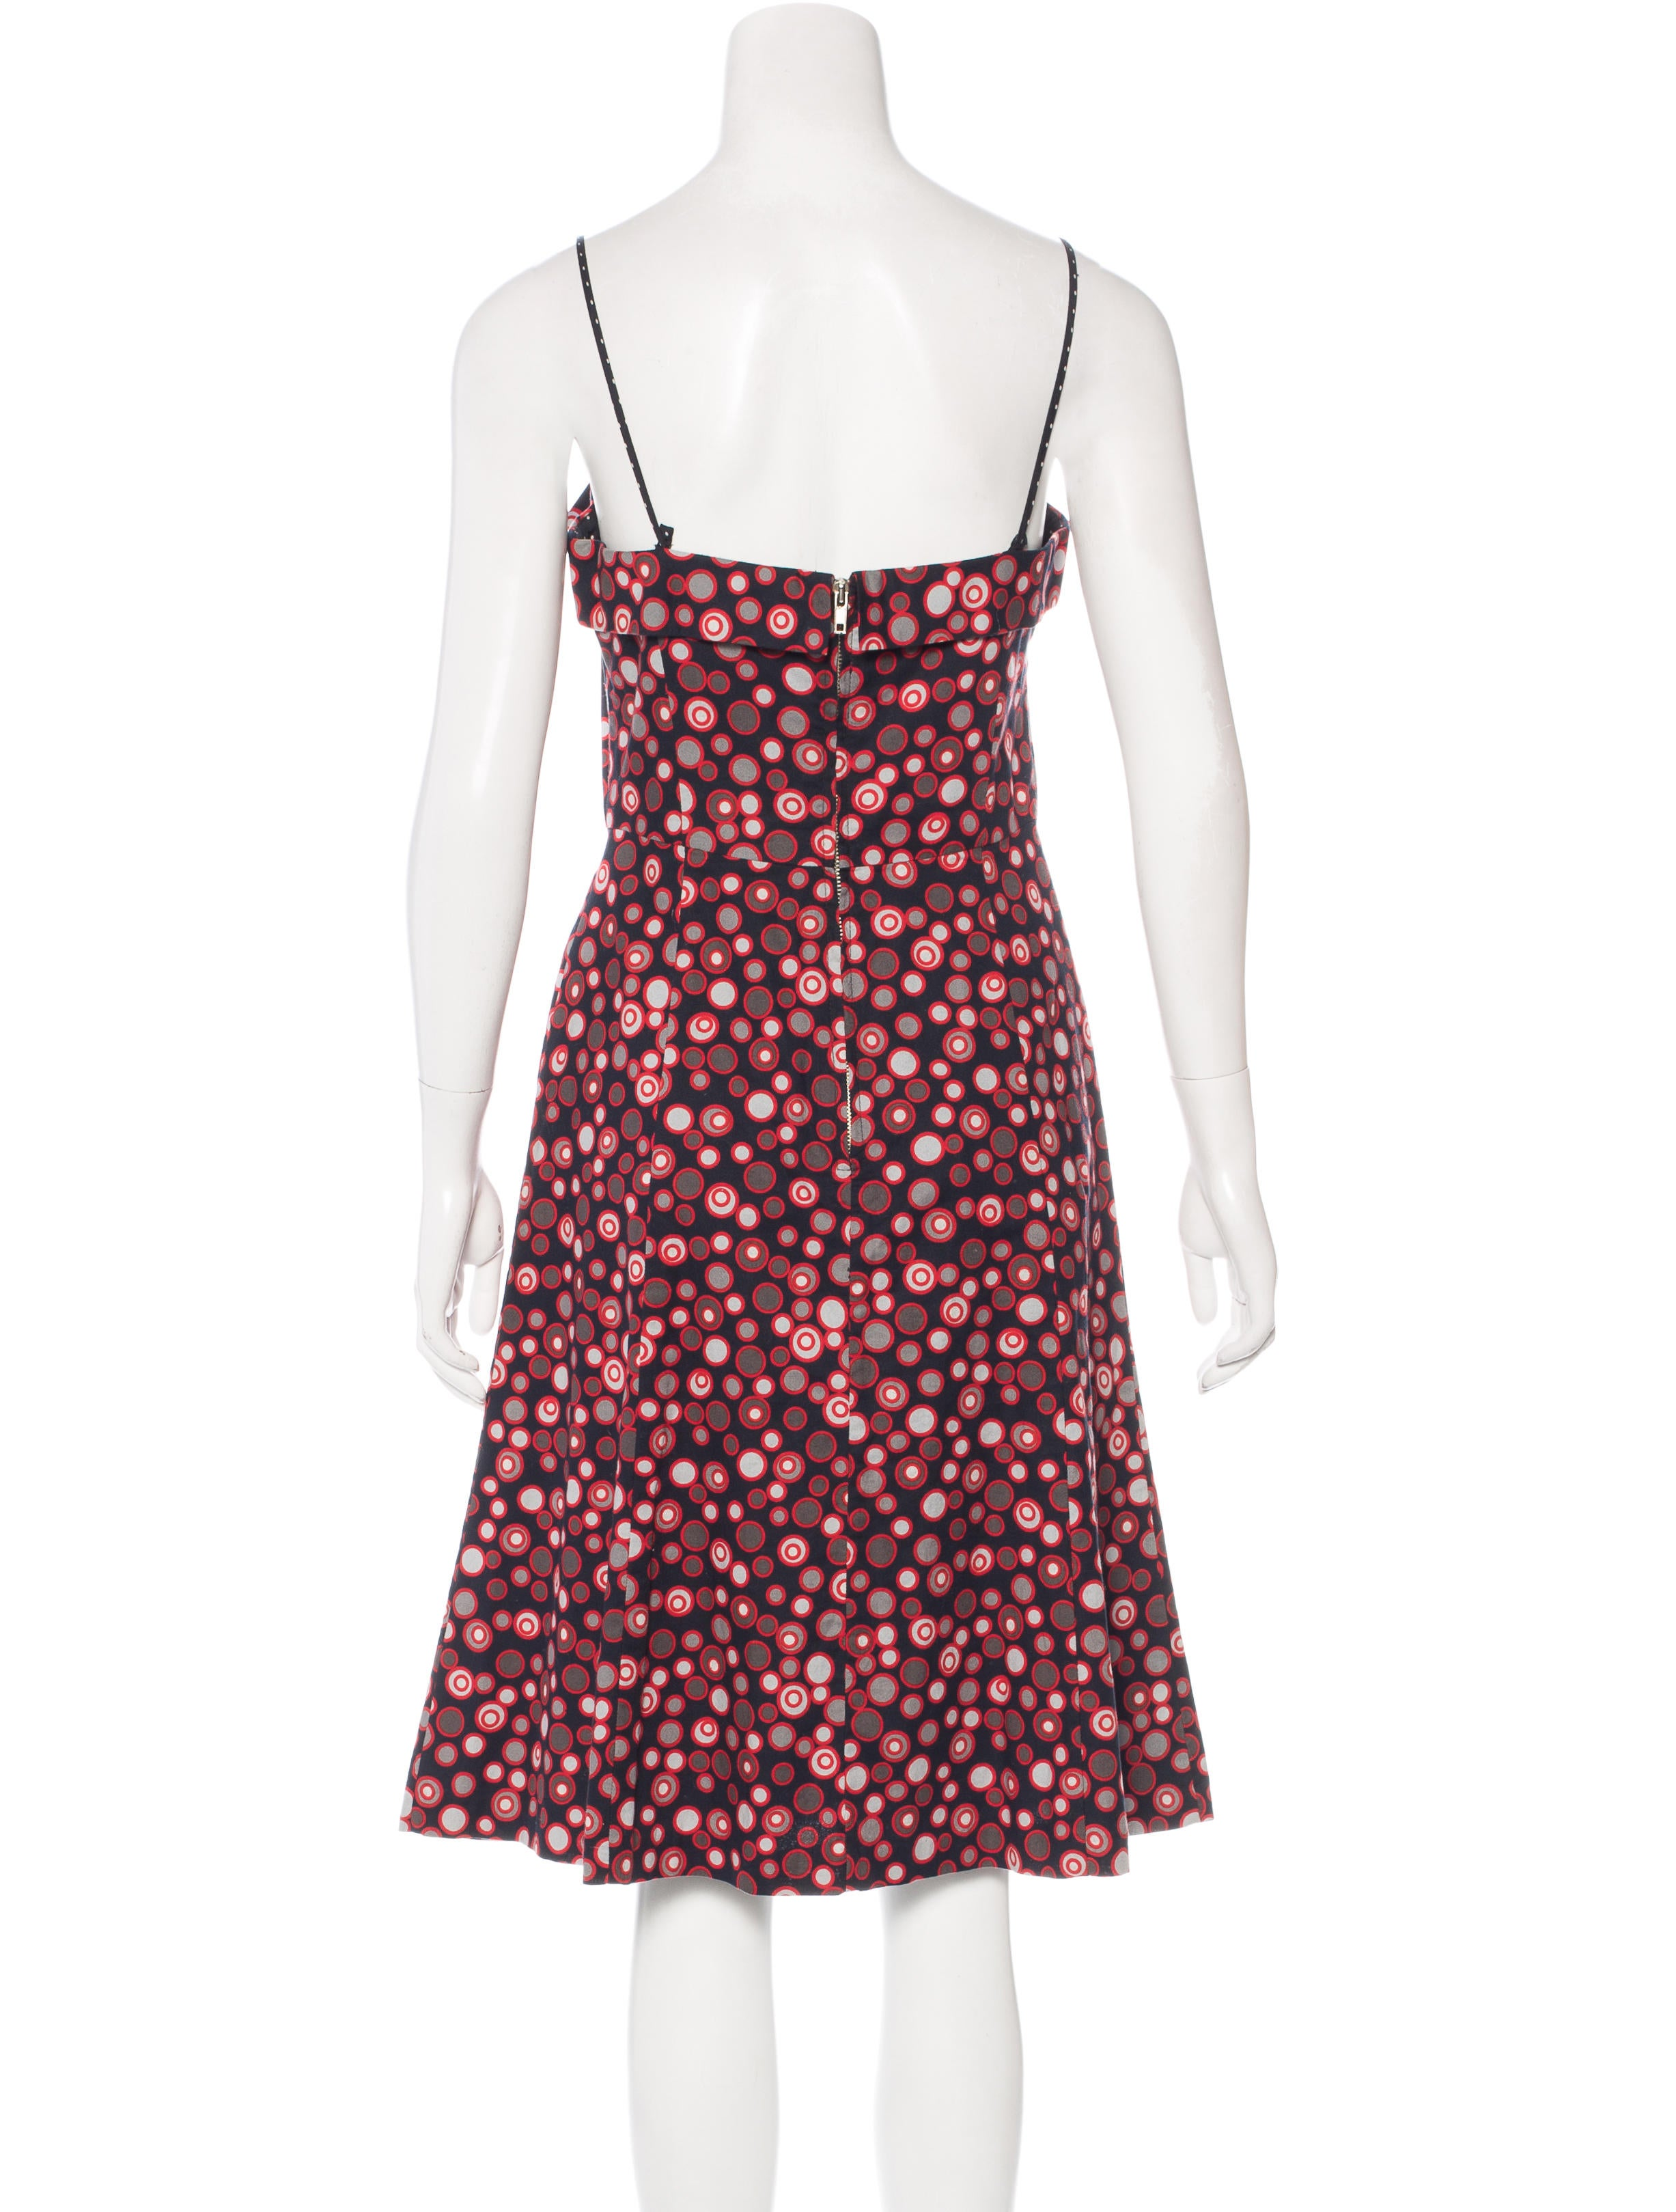 Shop for WHITE/BLACK 5XL Polka Dot Sleeveless Plus Size Sweetheart Dress online at $ and discover fashion at specialtysports.ga Cheapest and Latest women & men fashion site including categories such as dresses, shoes, bags and jewelry with free shipping all over the world.5/5(4).